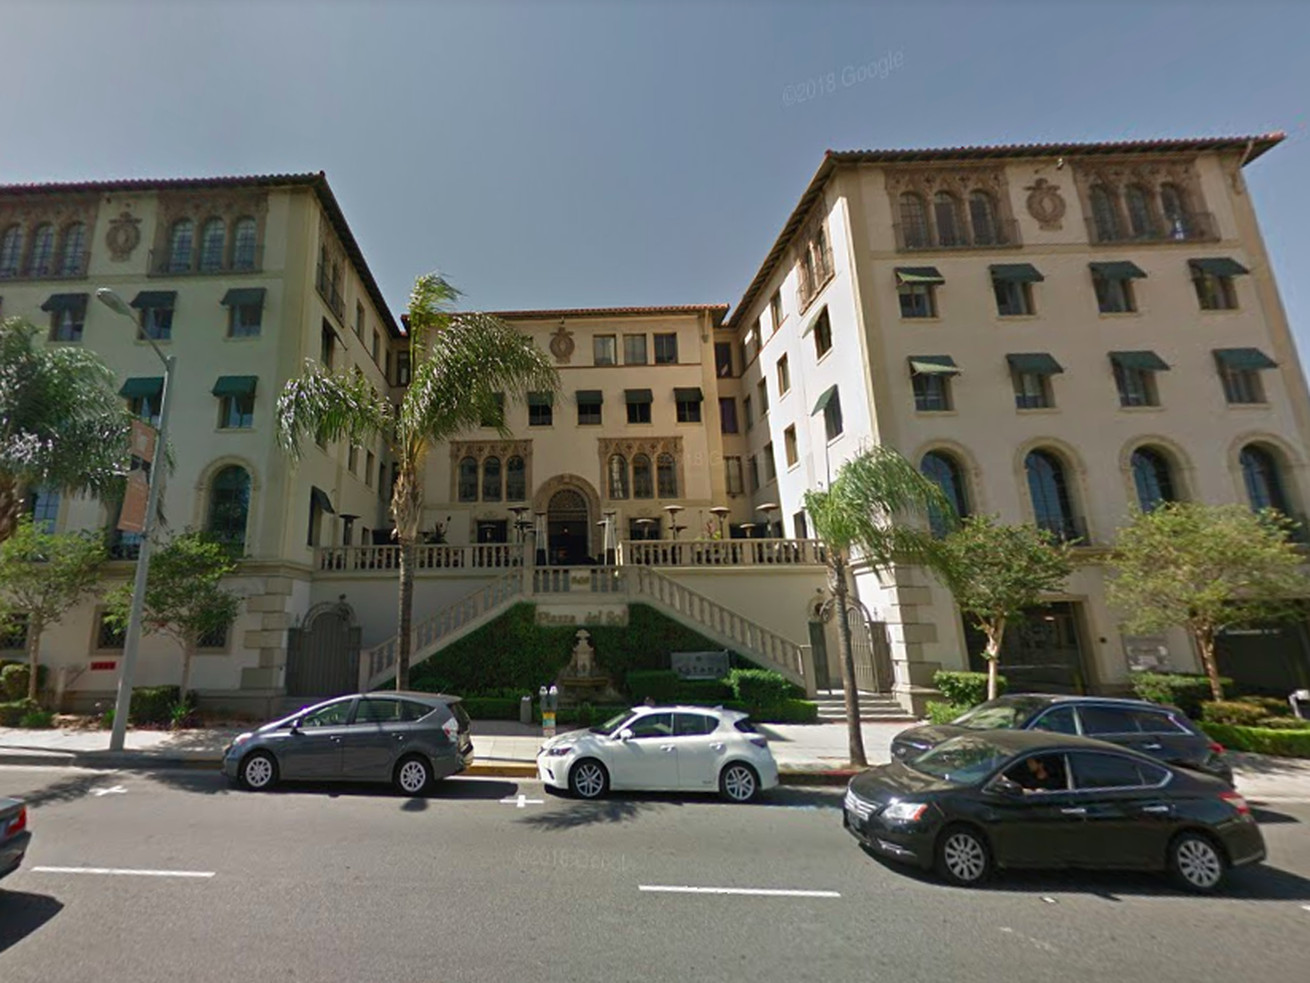 The Piazza del Sol at 8439 Sunset